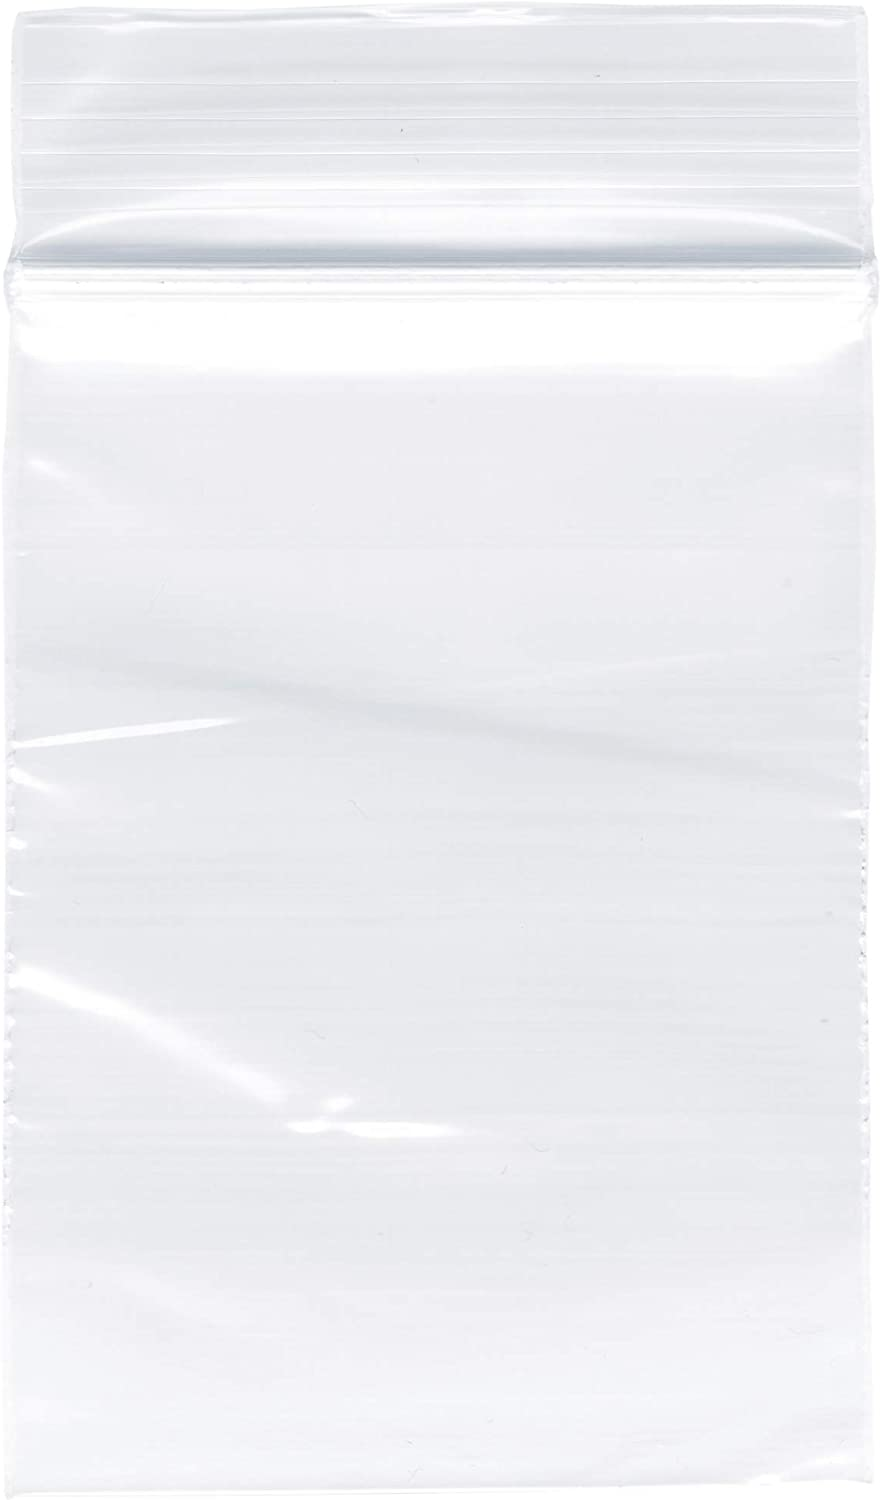 "Plymor Zipper Reclosable Plastic Bags, 2 Mil, 2"" x 3"" (Pack of 100)"